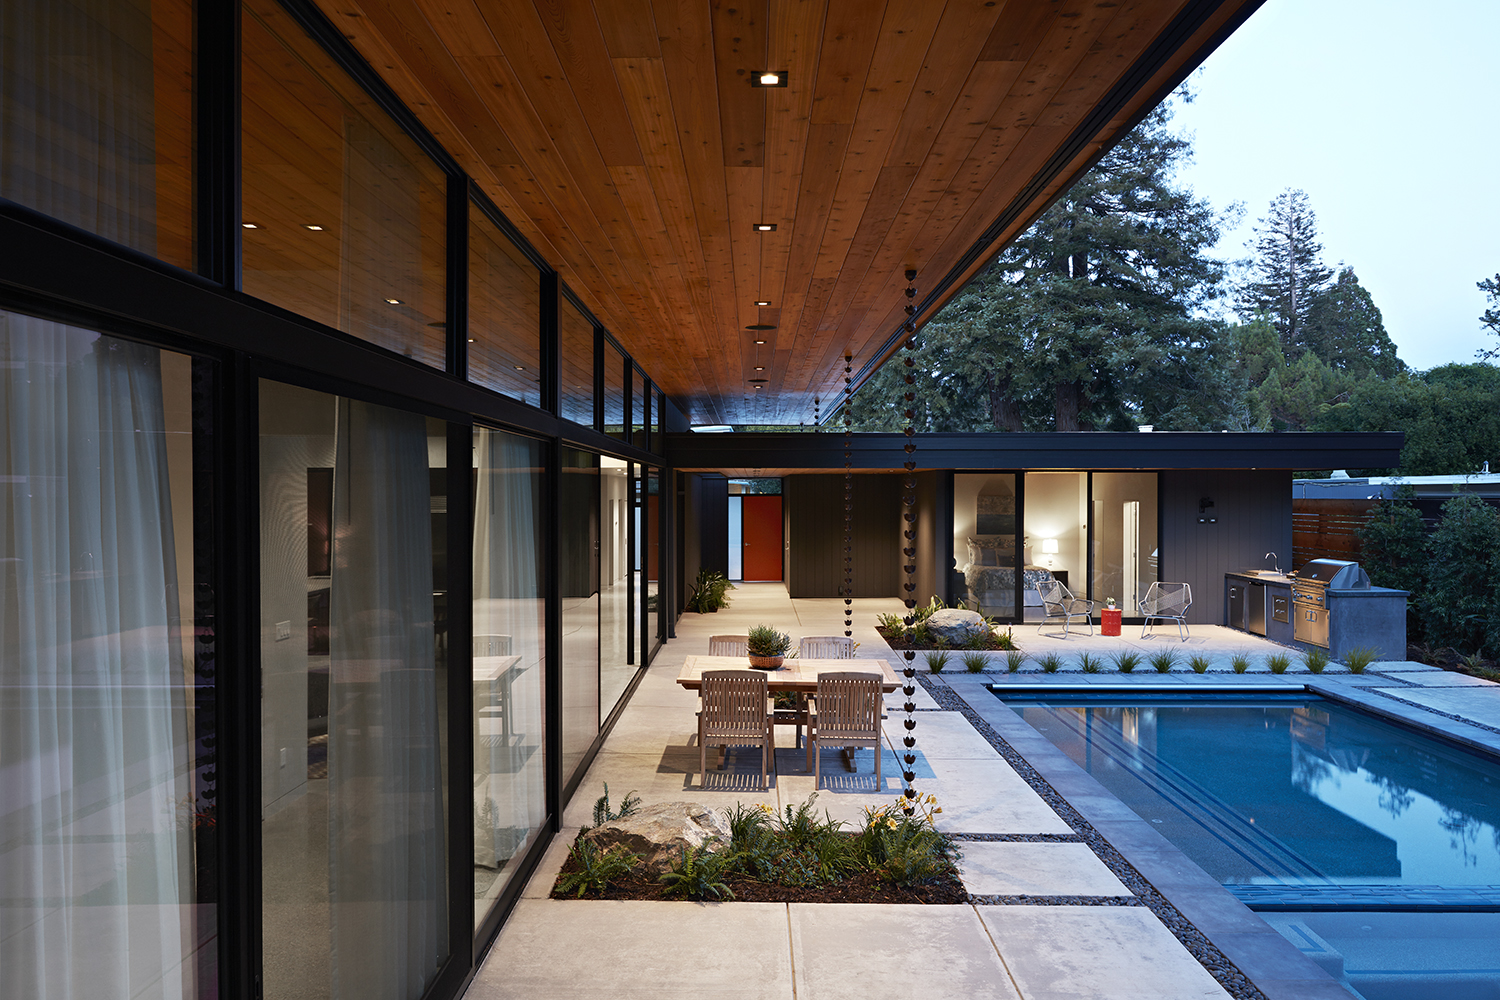 The large overhang provides shade and rain protection for the outdoor dining area.